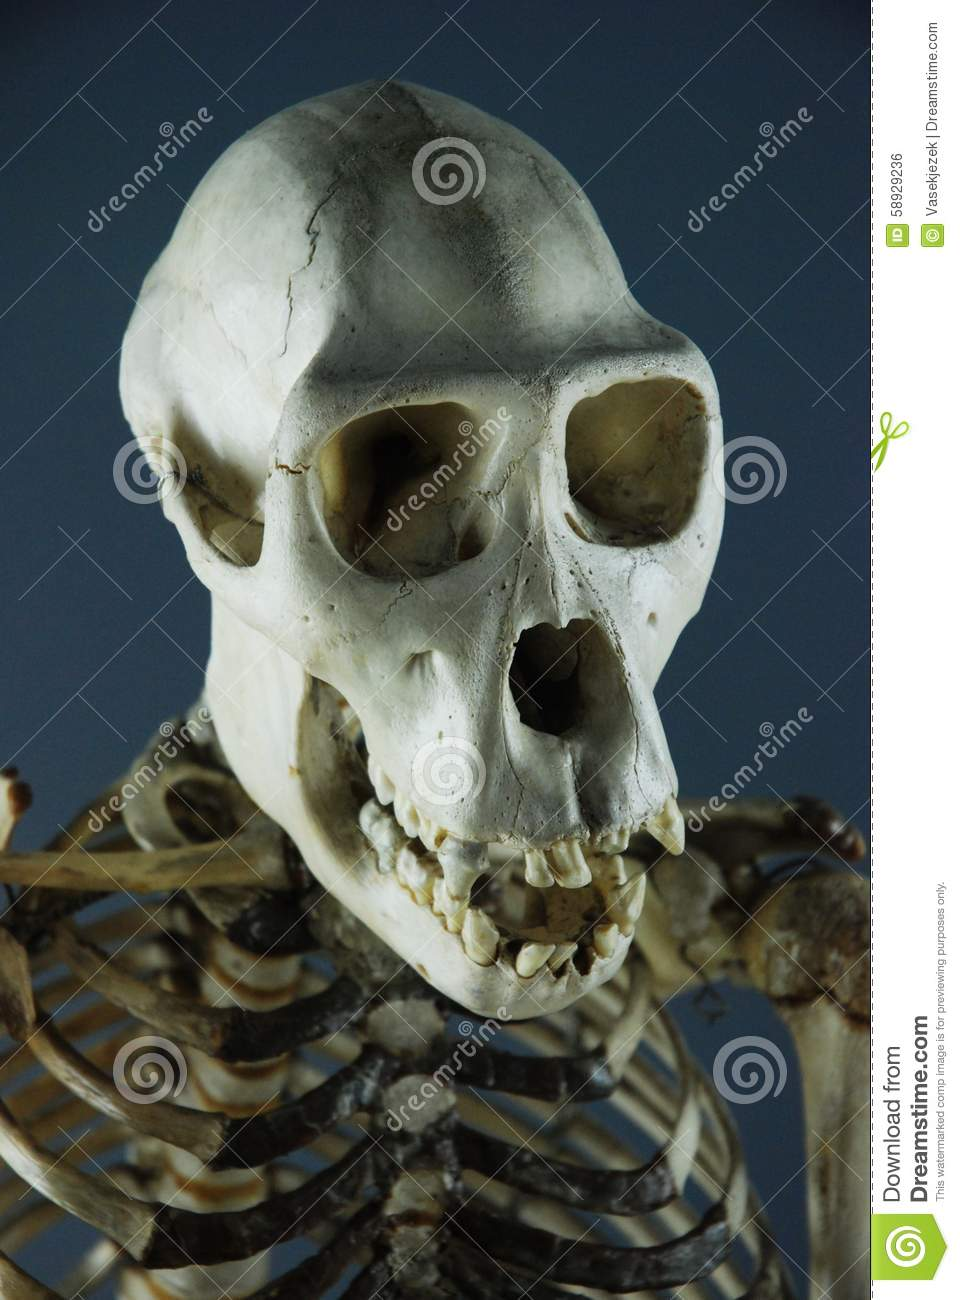 skull and skeleton of a primate stock photo image 58929236